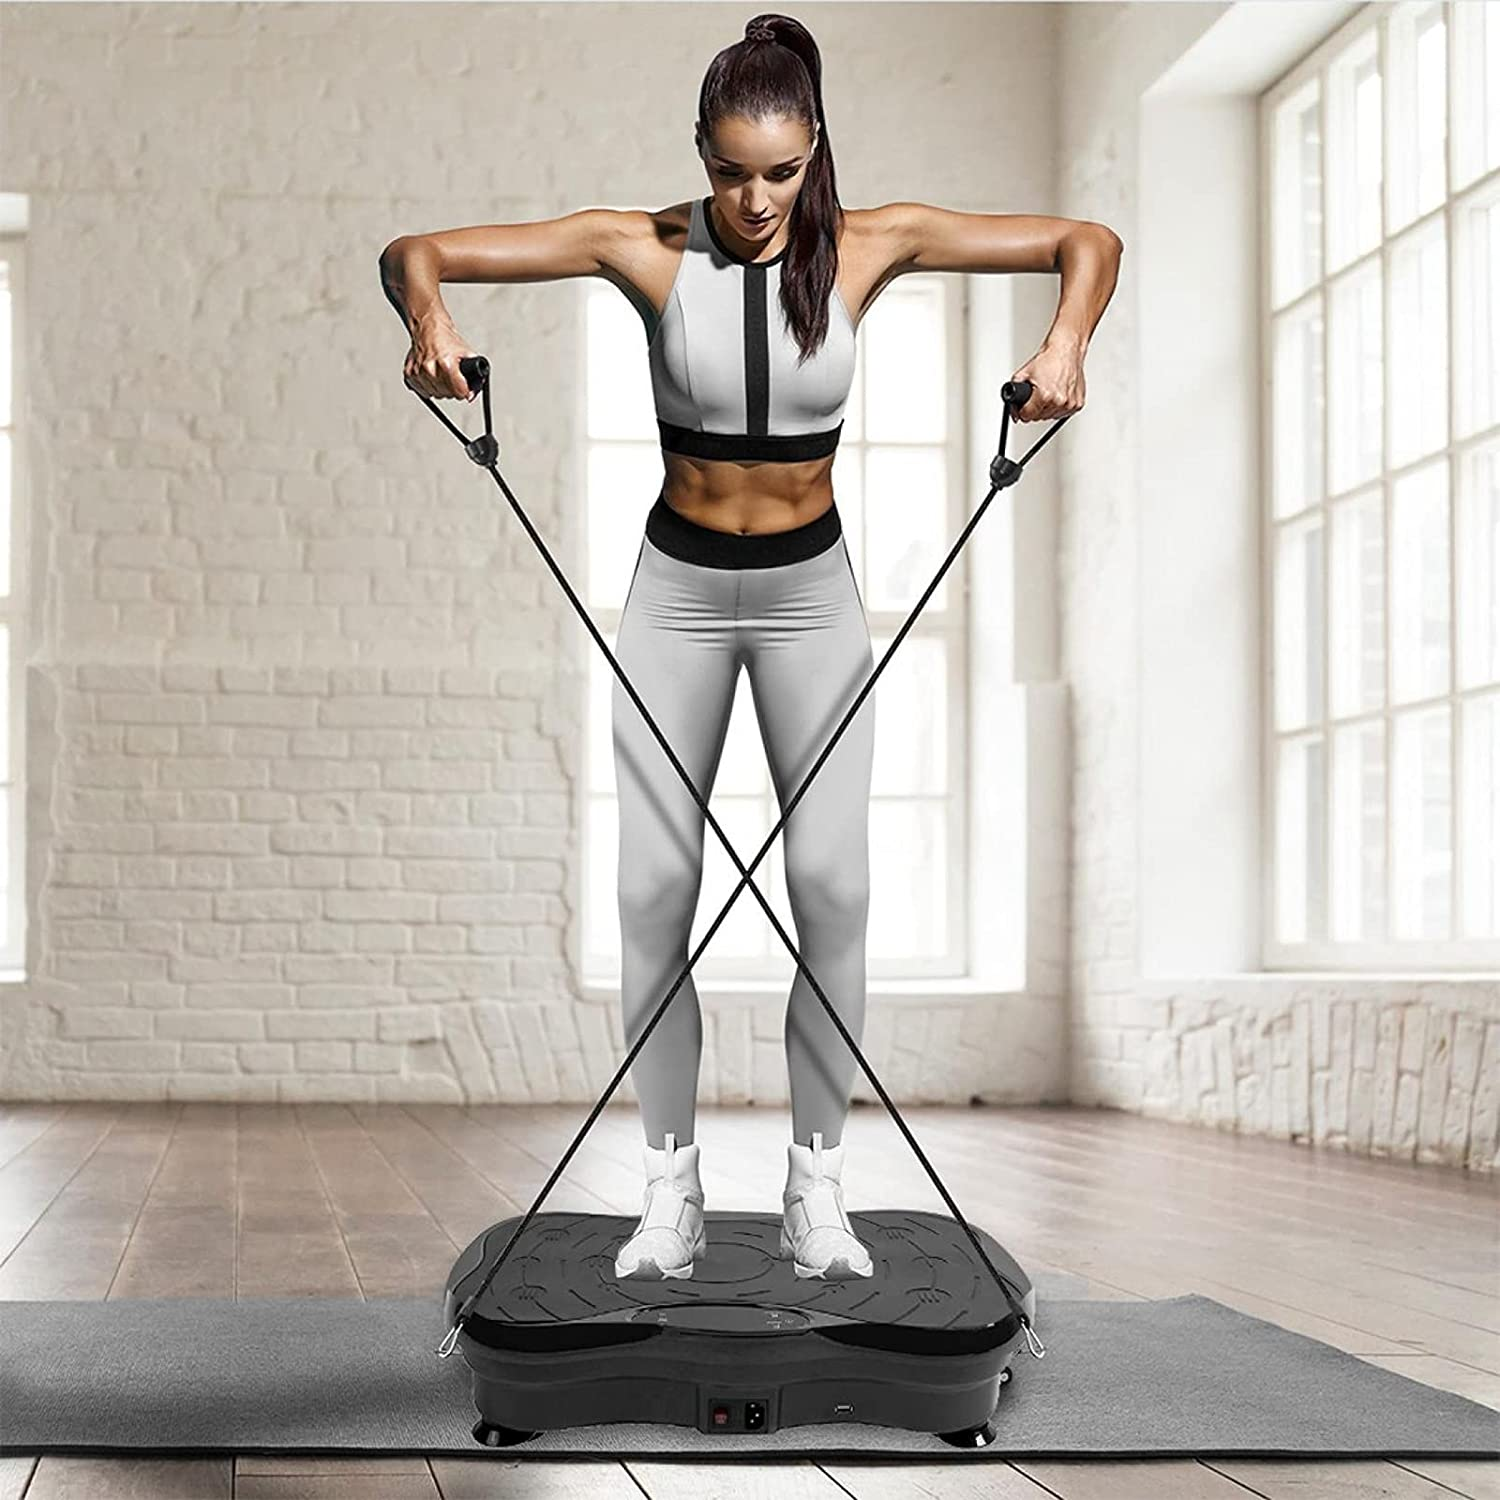 DFDGBD Vibration Plate Exercise Machine Bombing free shipping Lowest price challenge - Workout Body Whole Vib